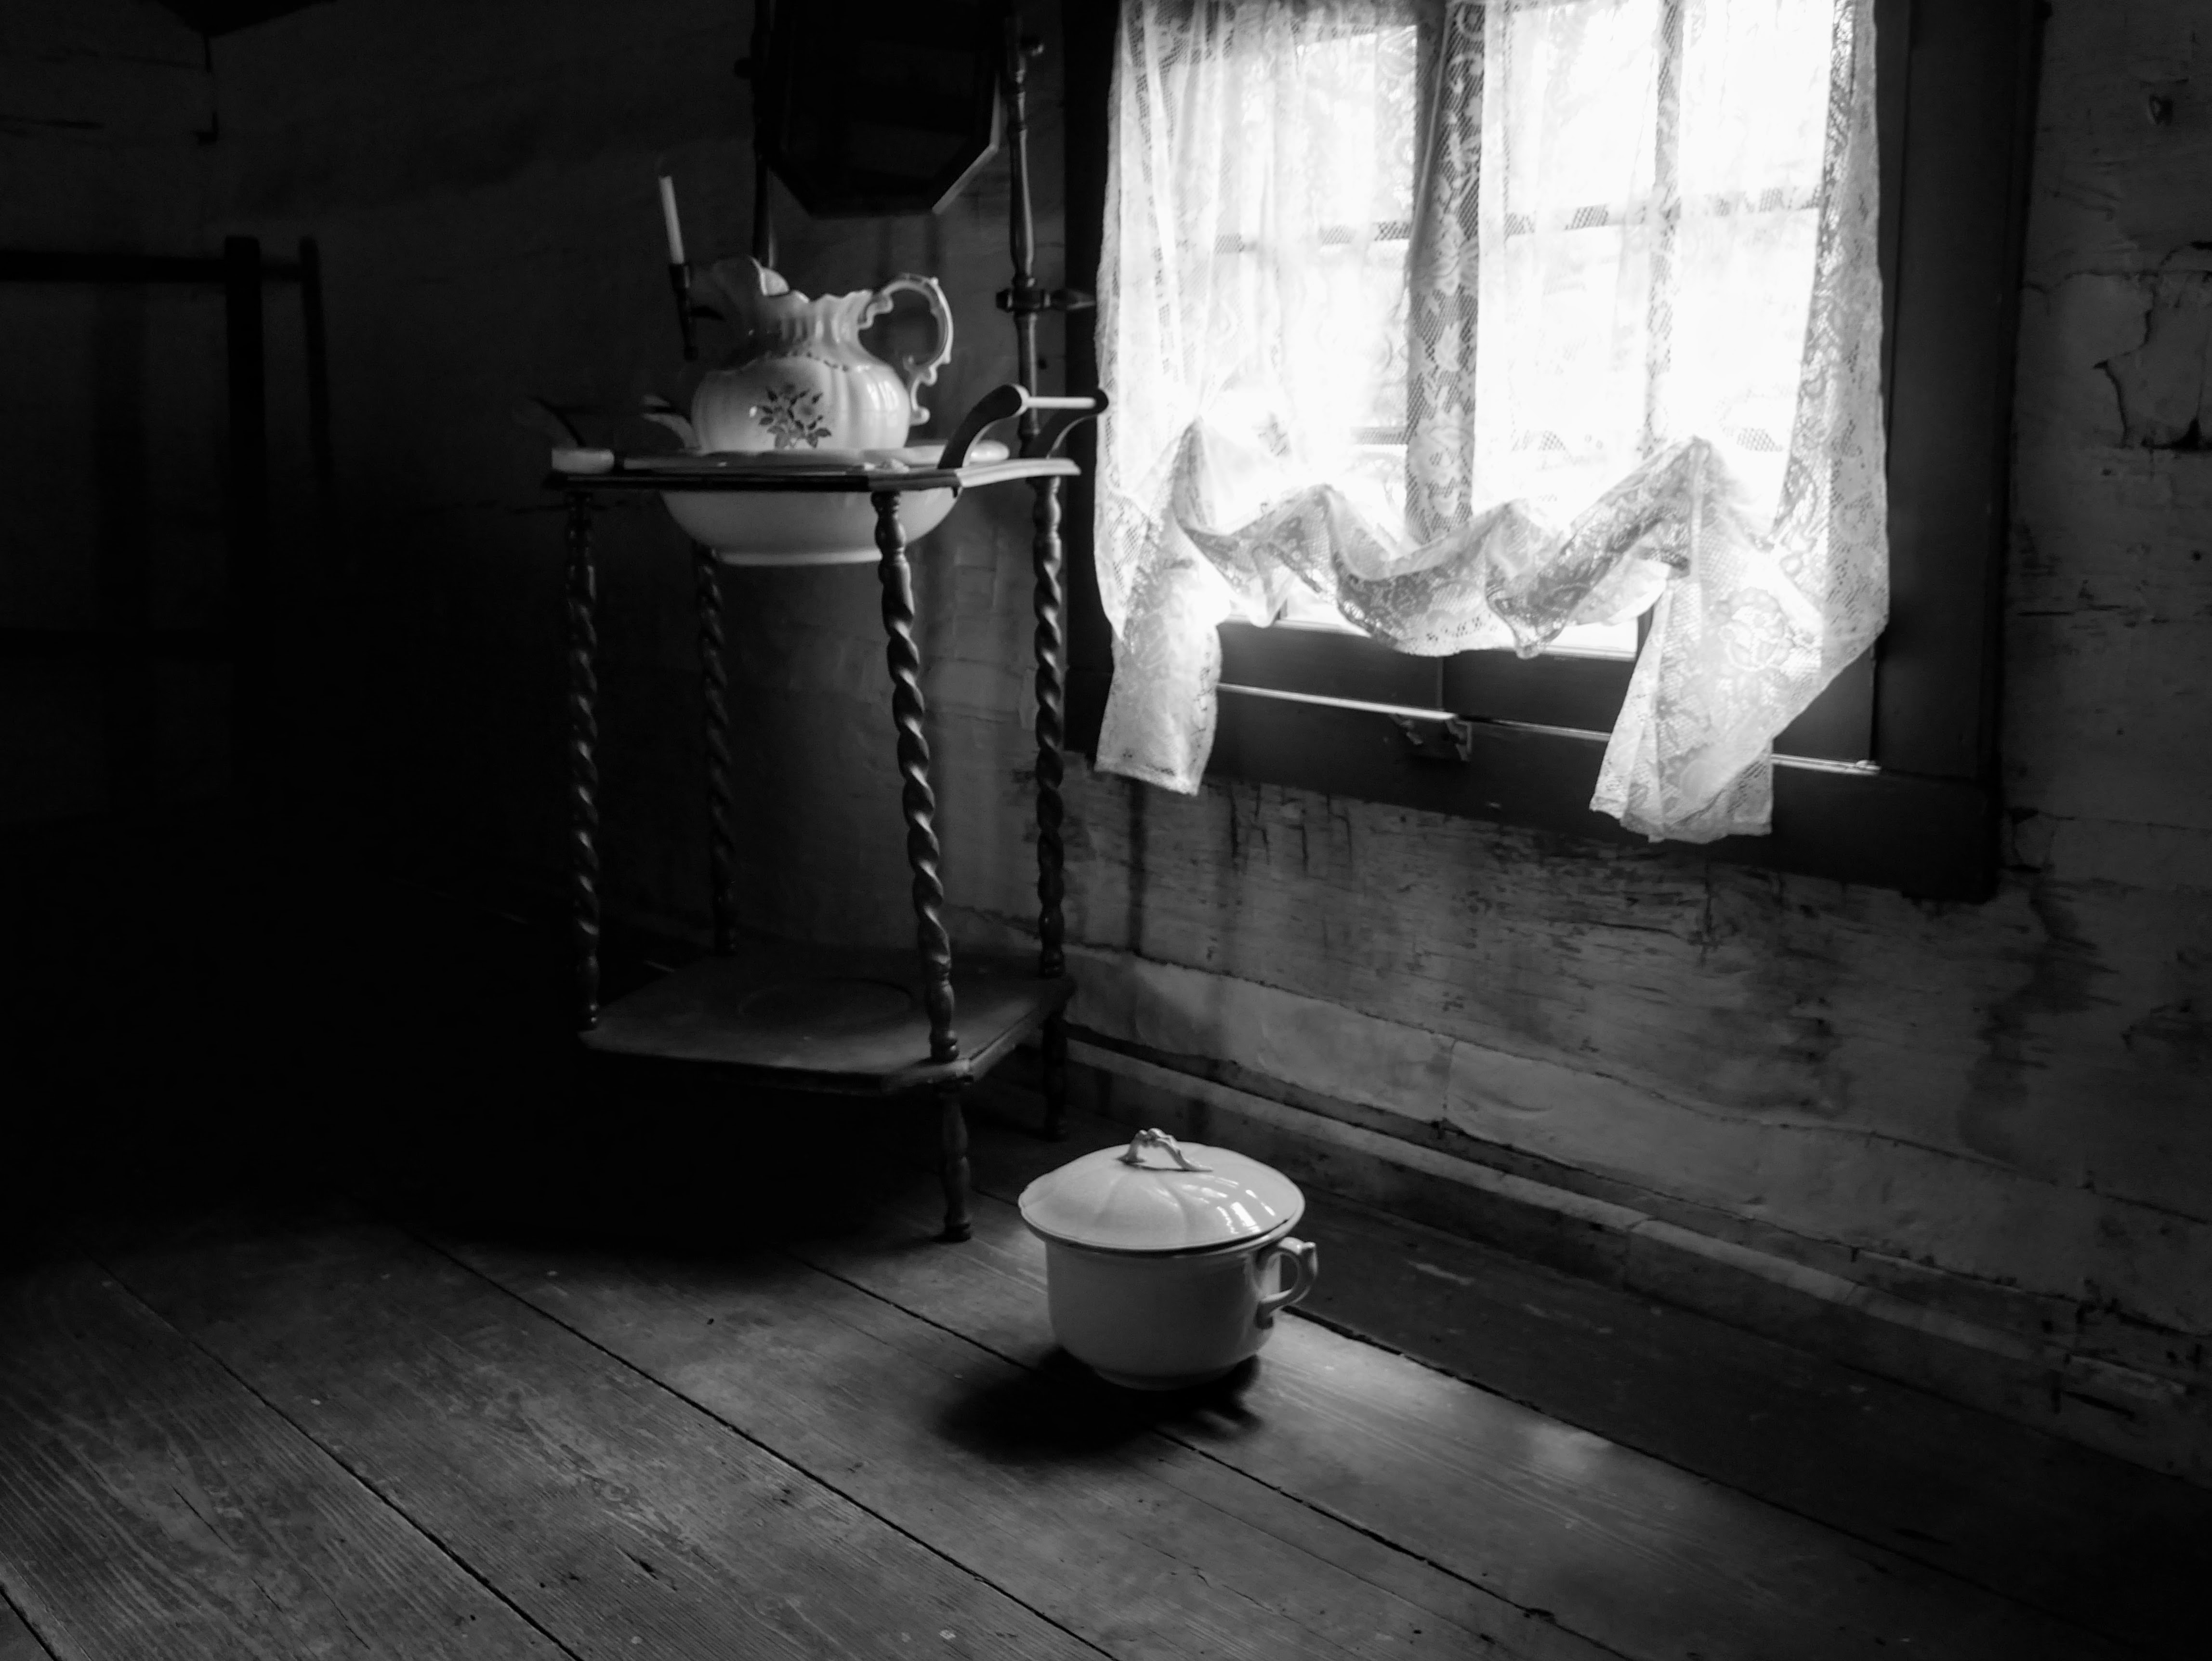 A small window with lace curtains illuminates a wooden washstand with mirror, bowl, and pitcher. On the wooden floor underneath the window sits a white, ceramic chamber pot with lid.